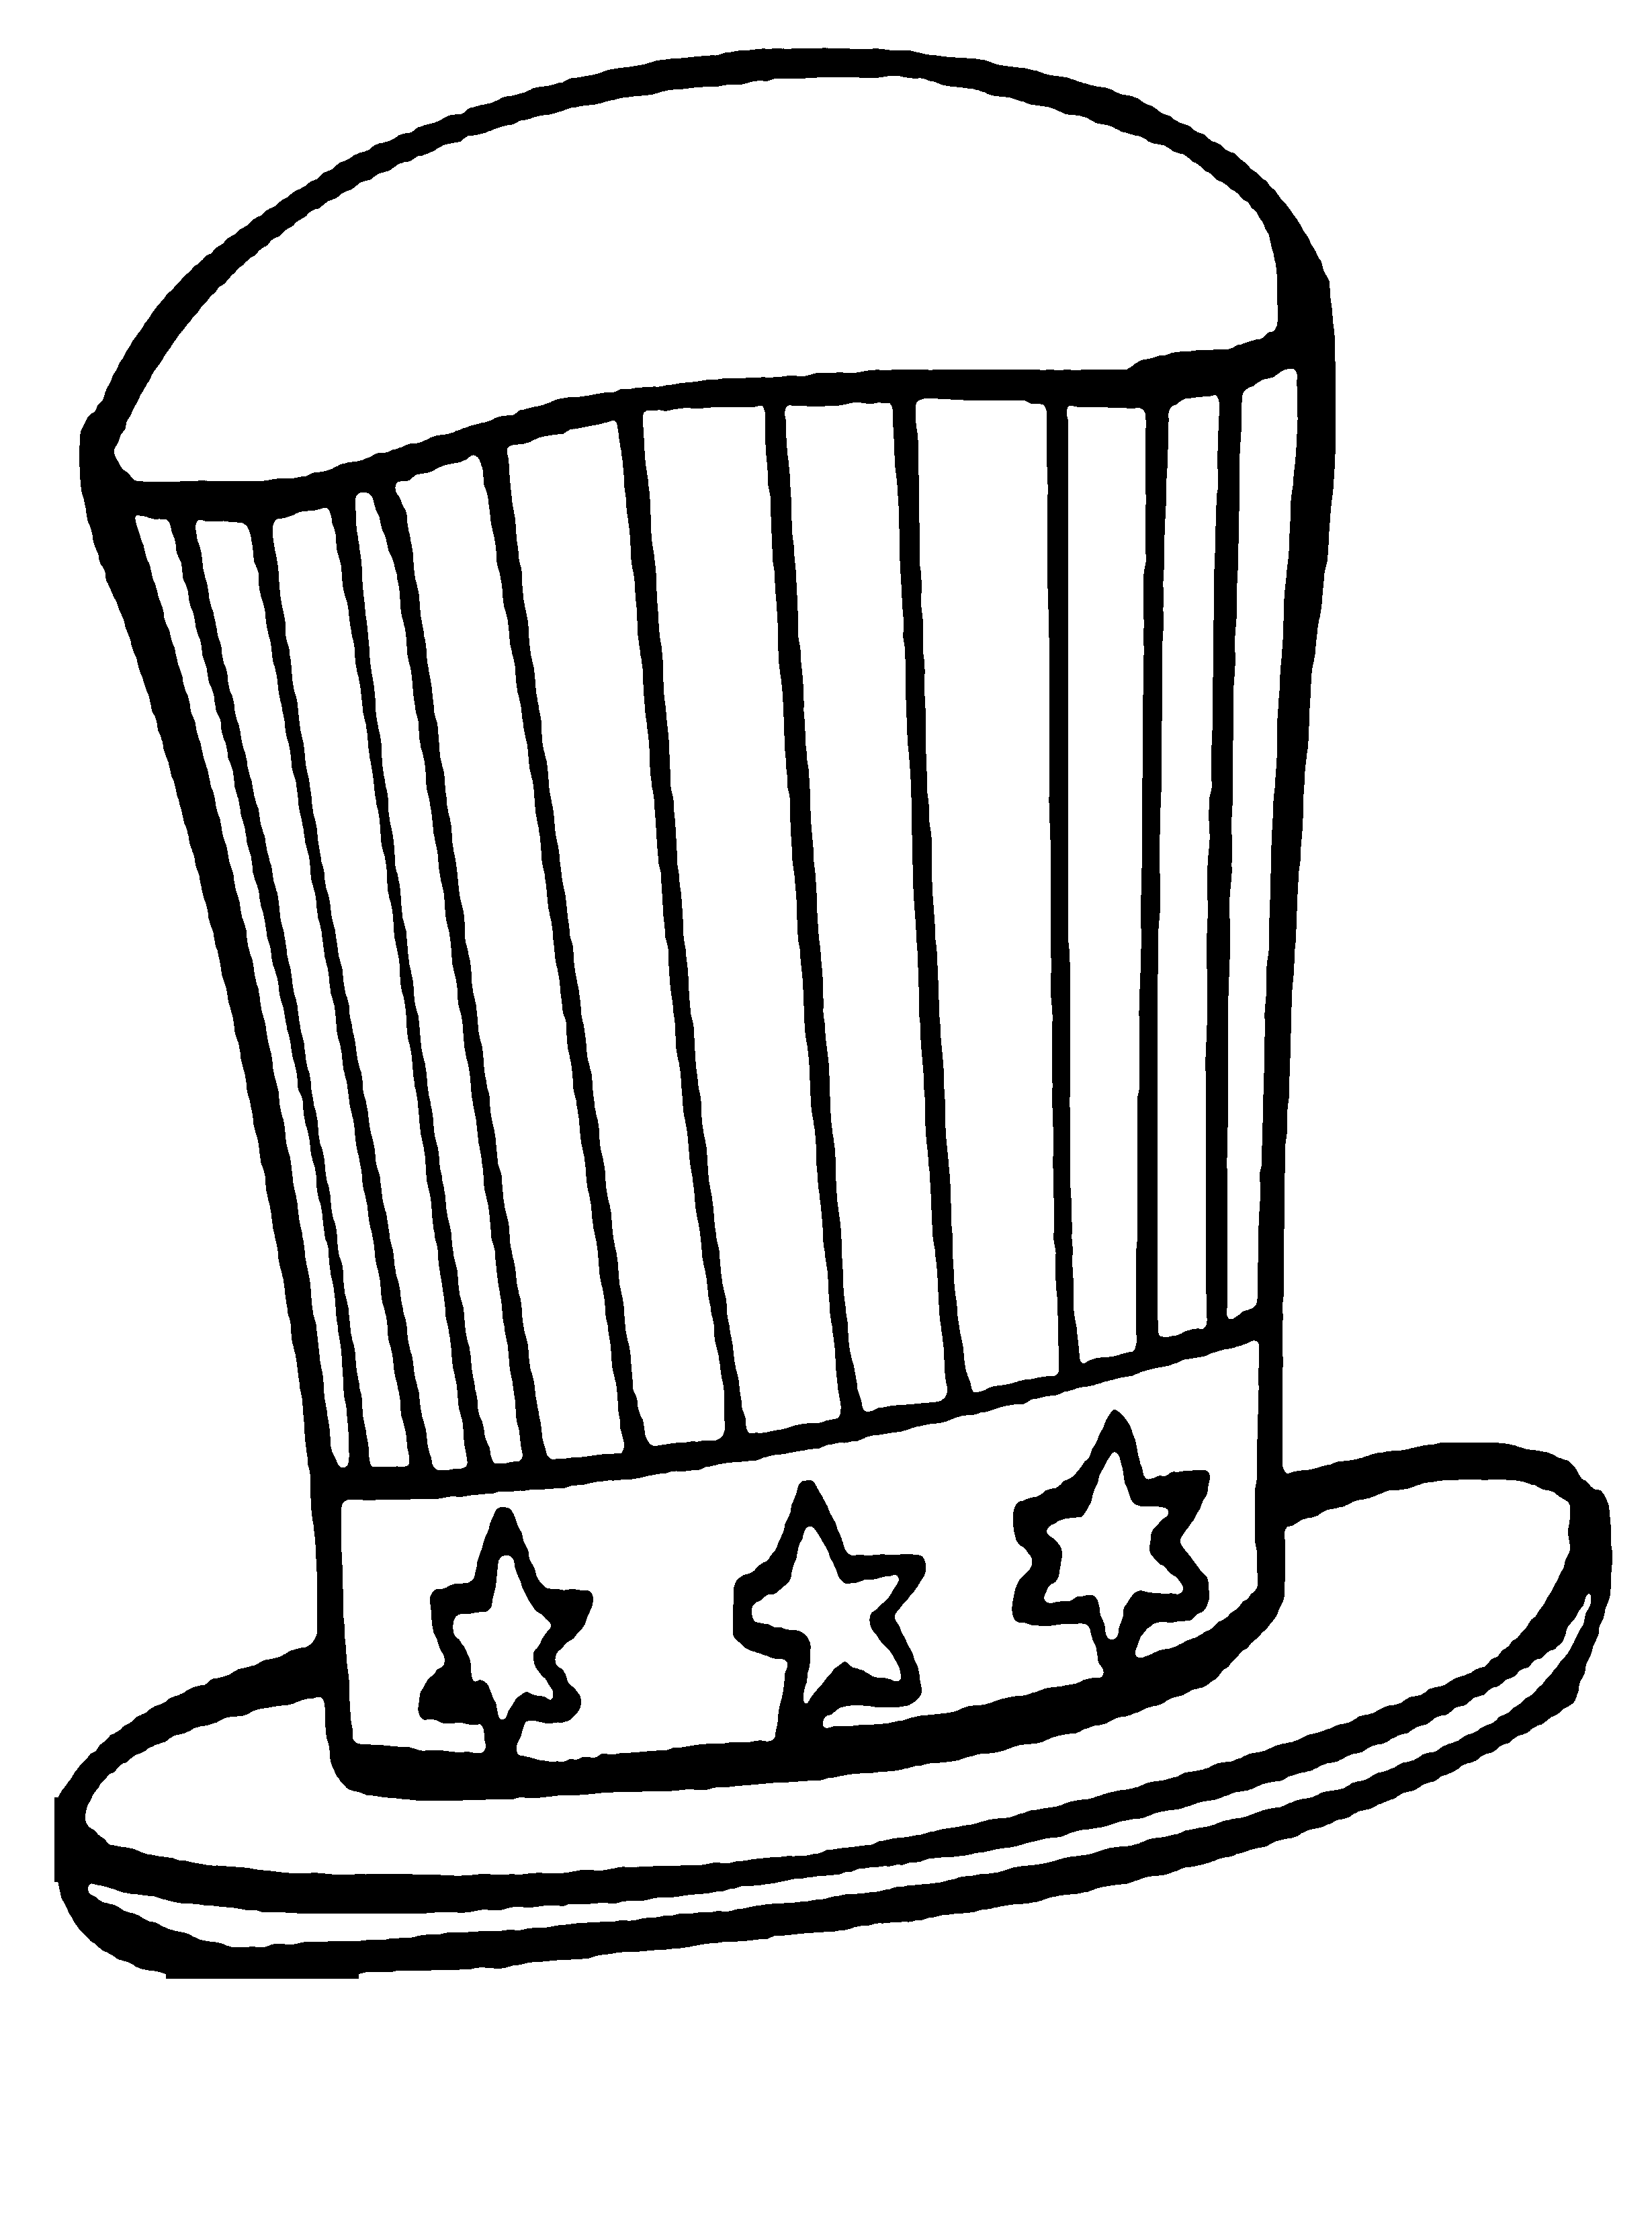 get free high quality hd wallpapers coloring page uncle sam - Uncle Sam Hat Coloring Page